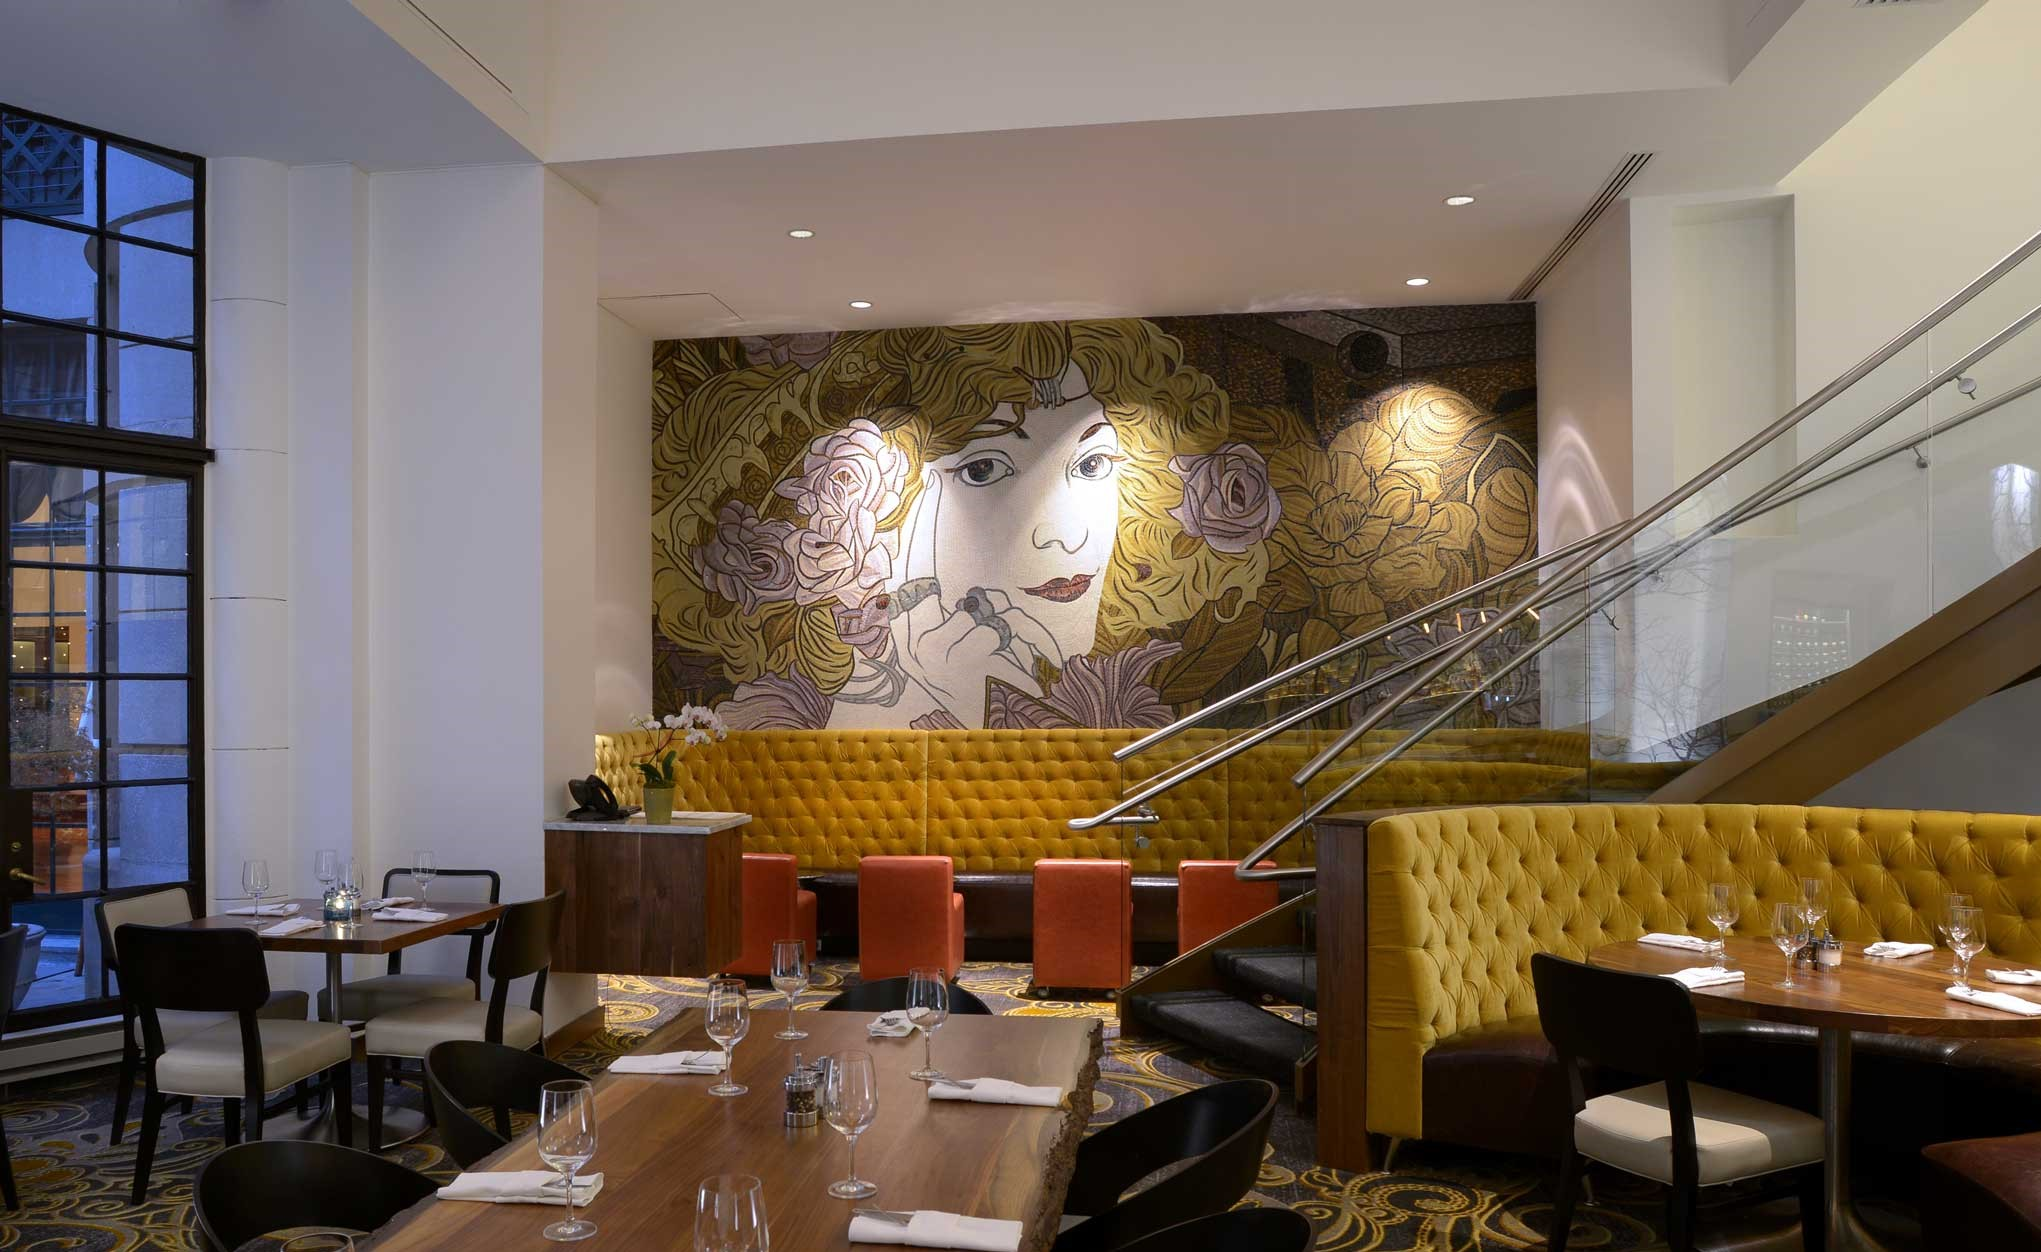 studio-saint-bars-and-restaurants-caucus-room-brasserie-washington-dc-2